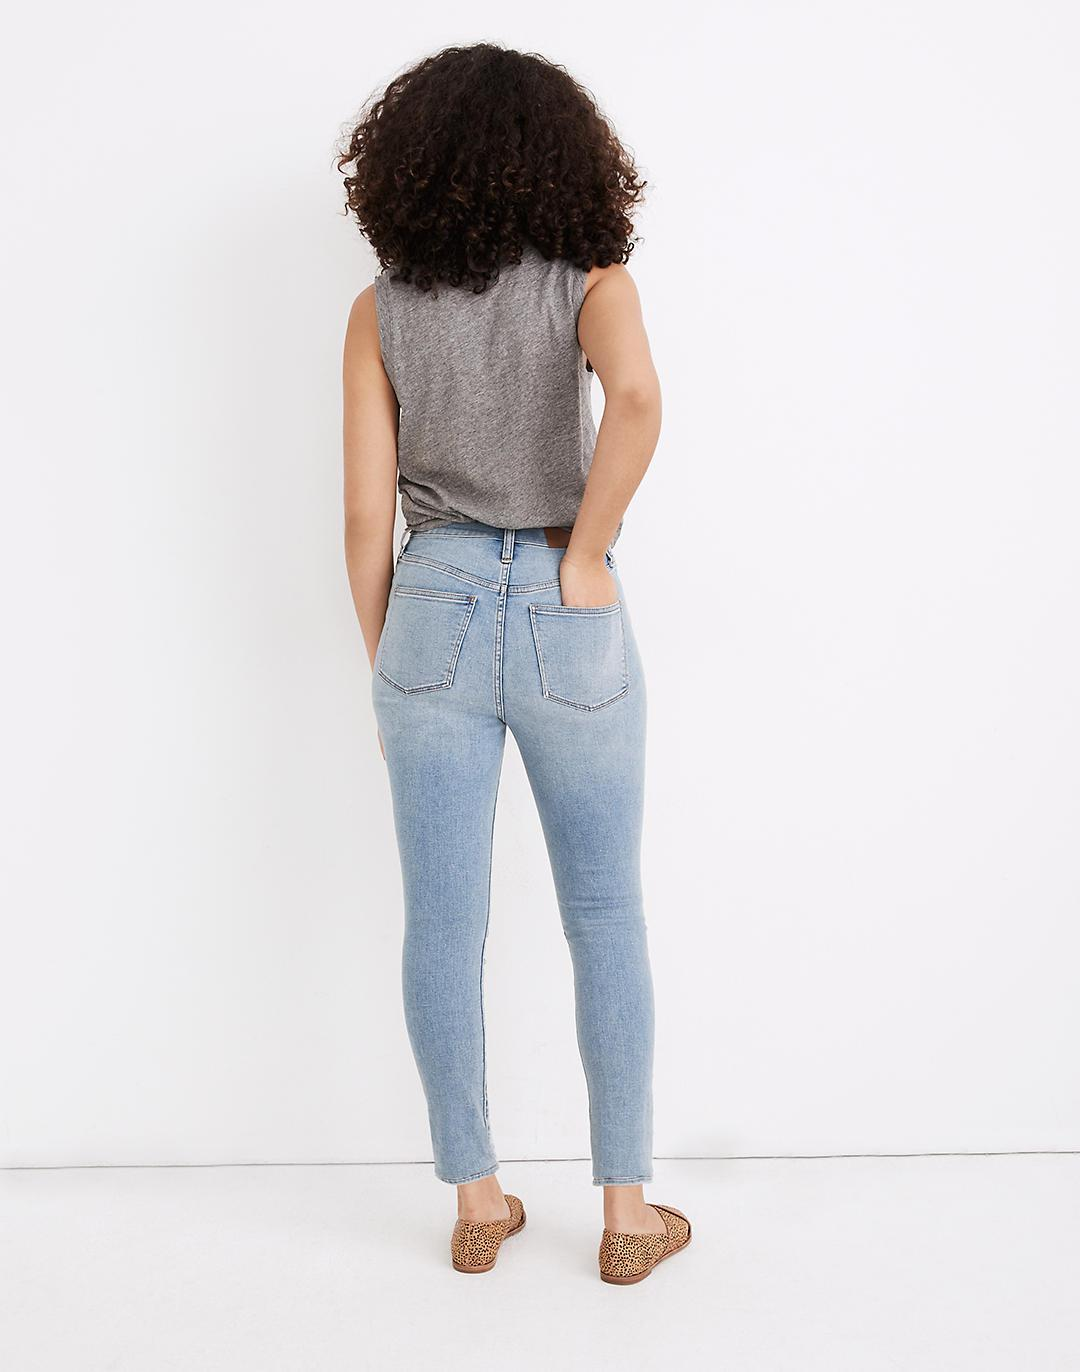 Curvy Roadtripper Authentic Jeans in Benton Wash: Knee-Rip Edition 2